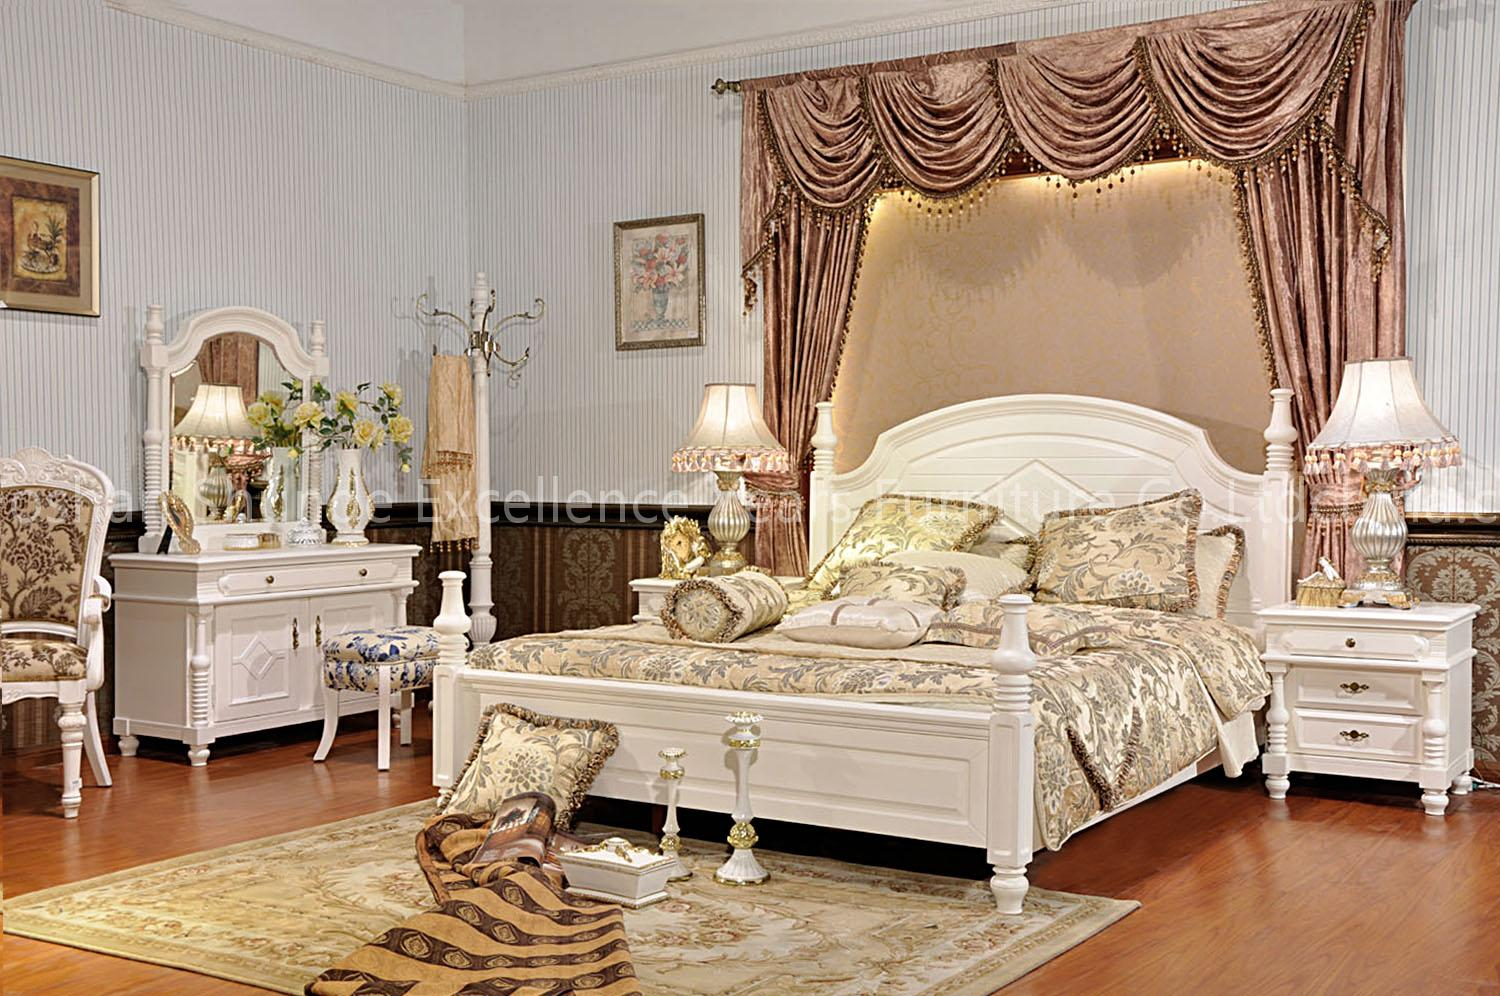 French bedrooms 135879.jpg